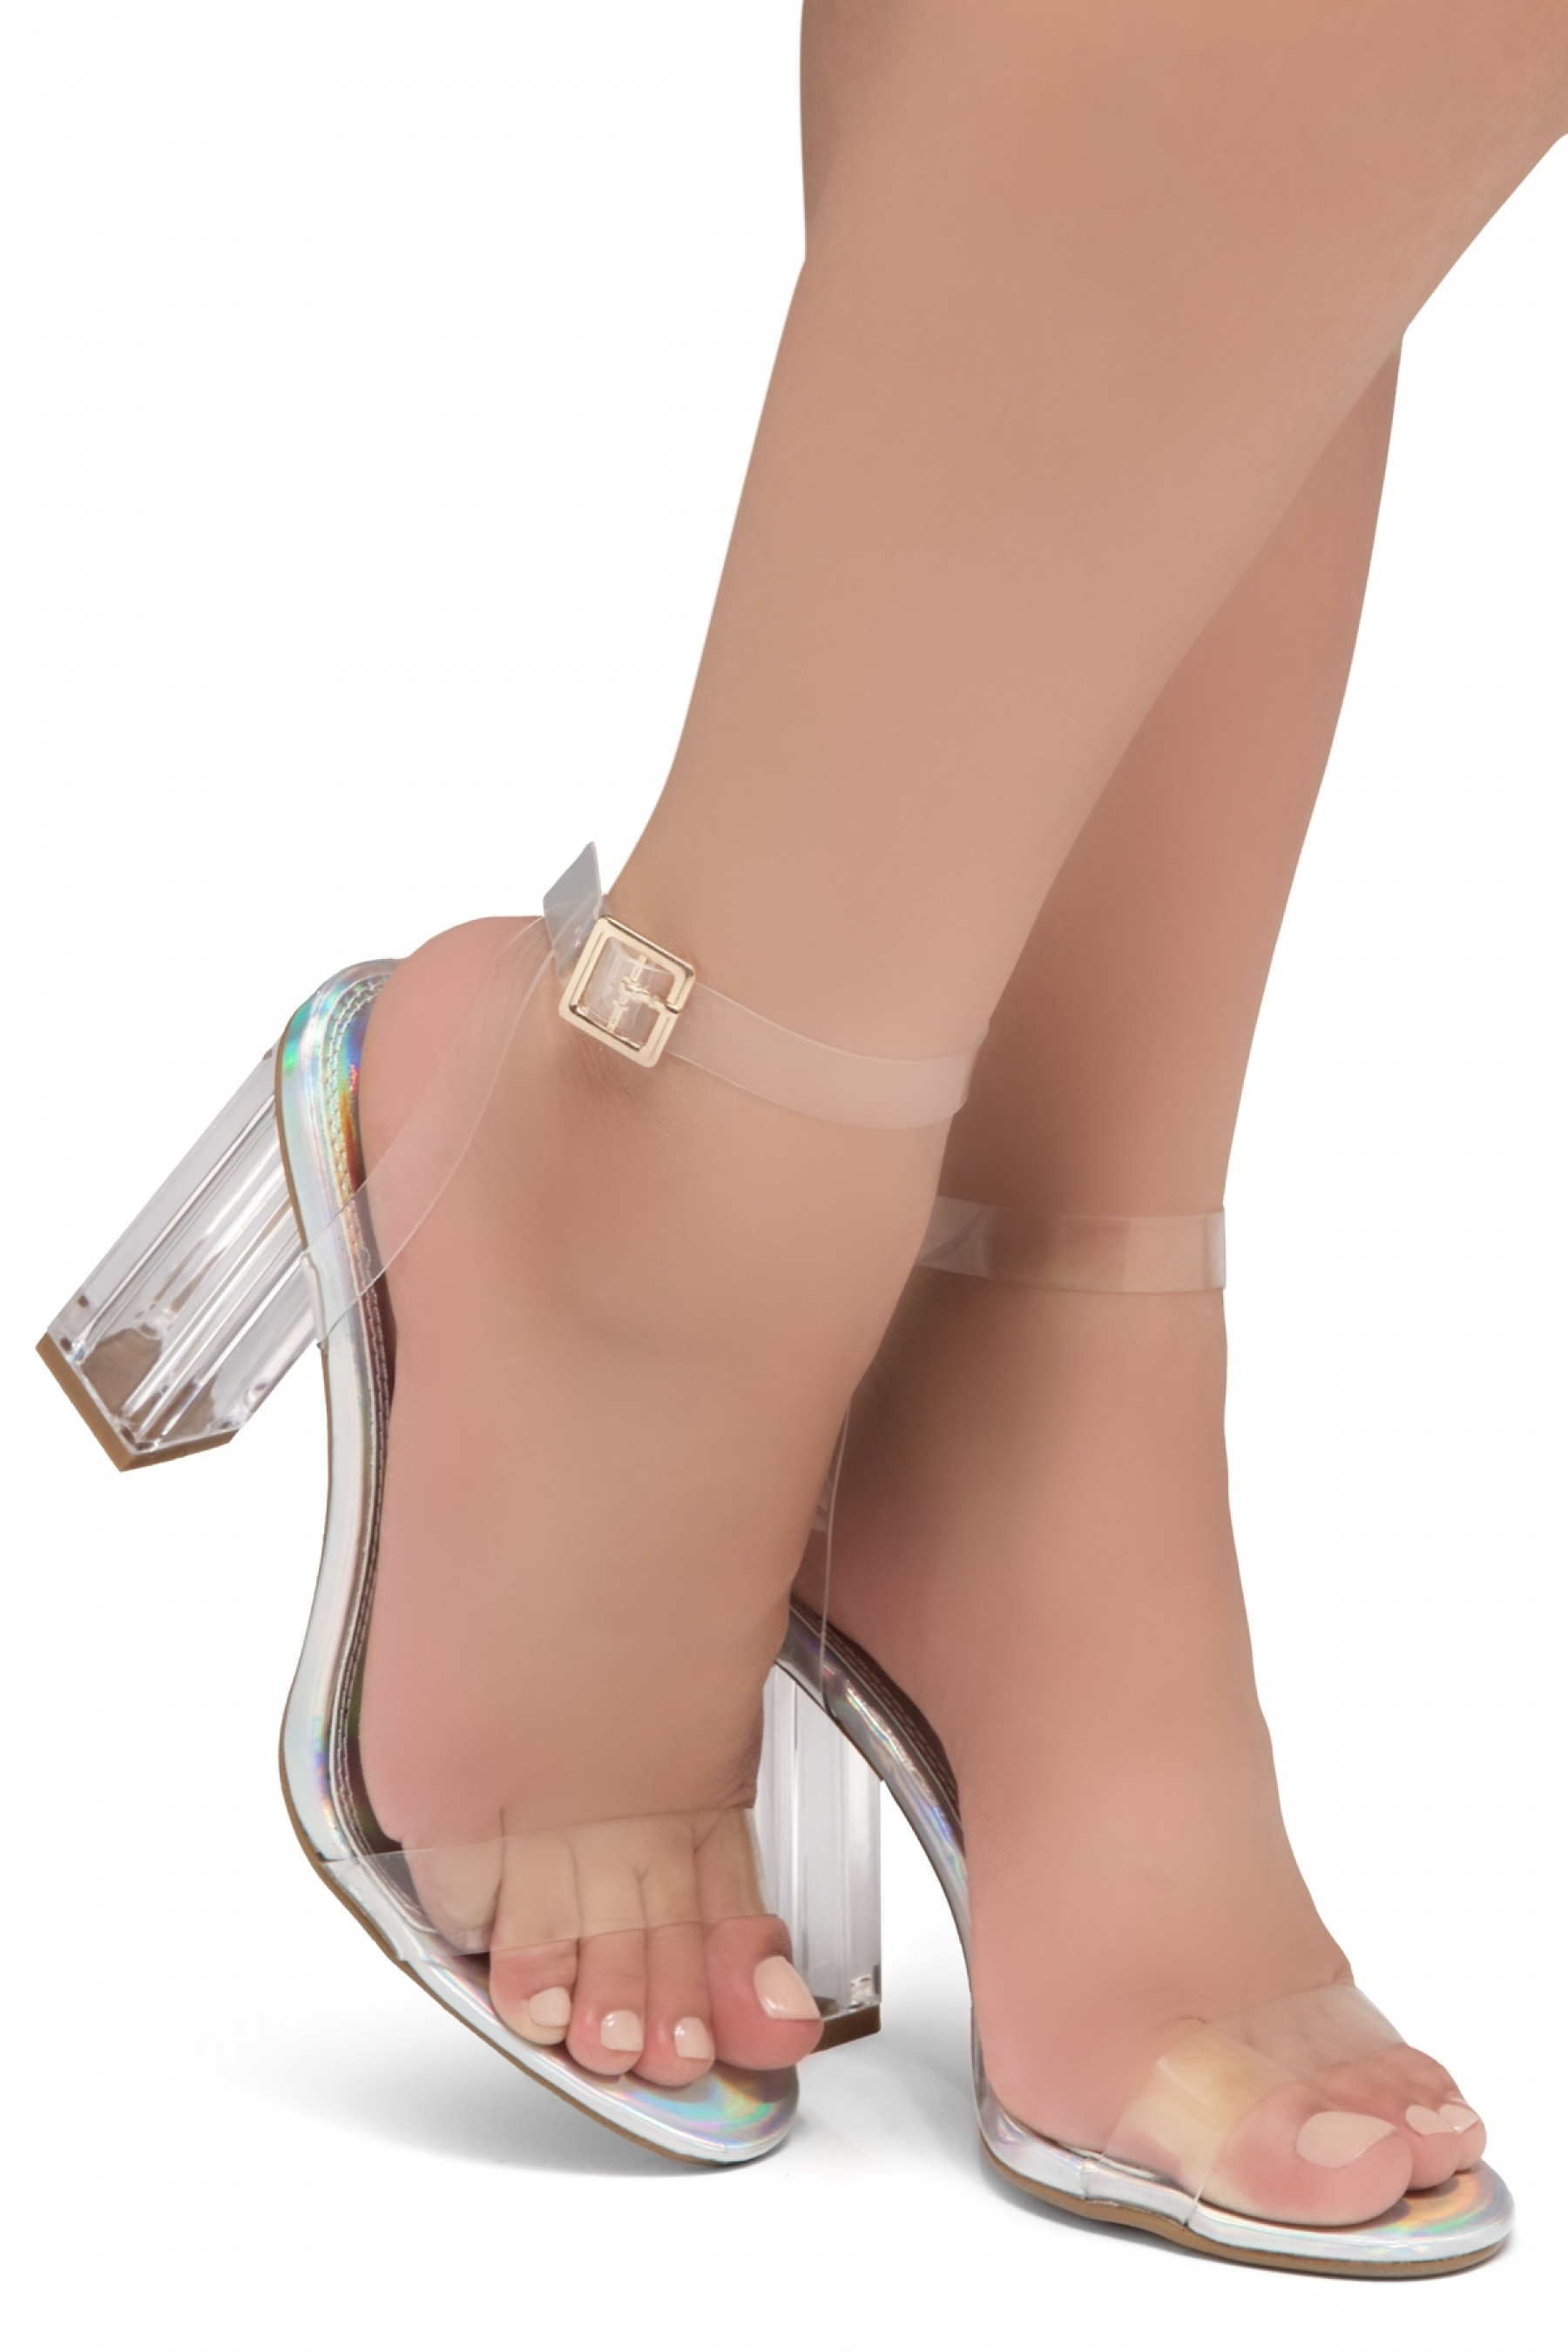 Shoe Land SL-Cllaary Perspex heel, ankle strap with an adjustable buckle (1801/ClearSilver)